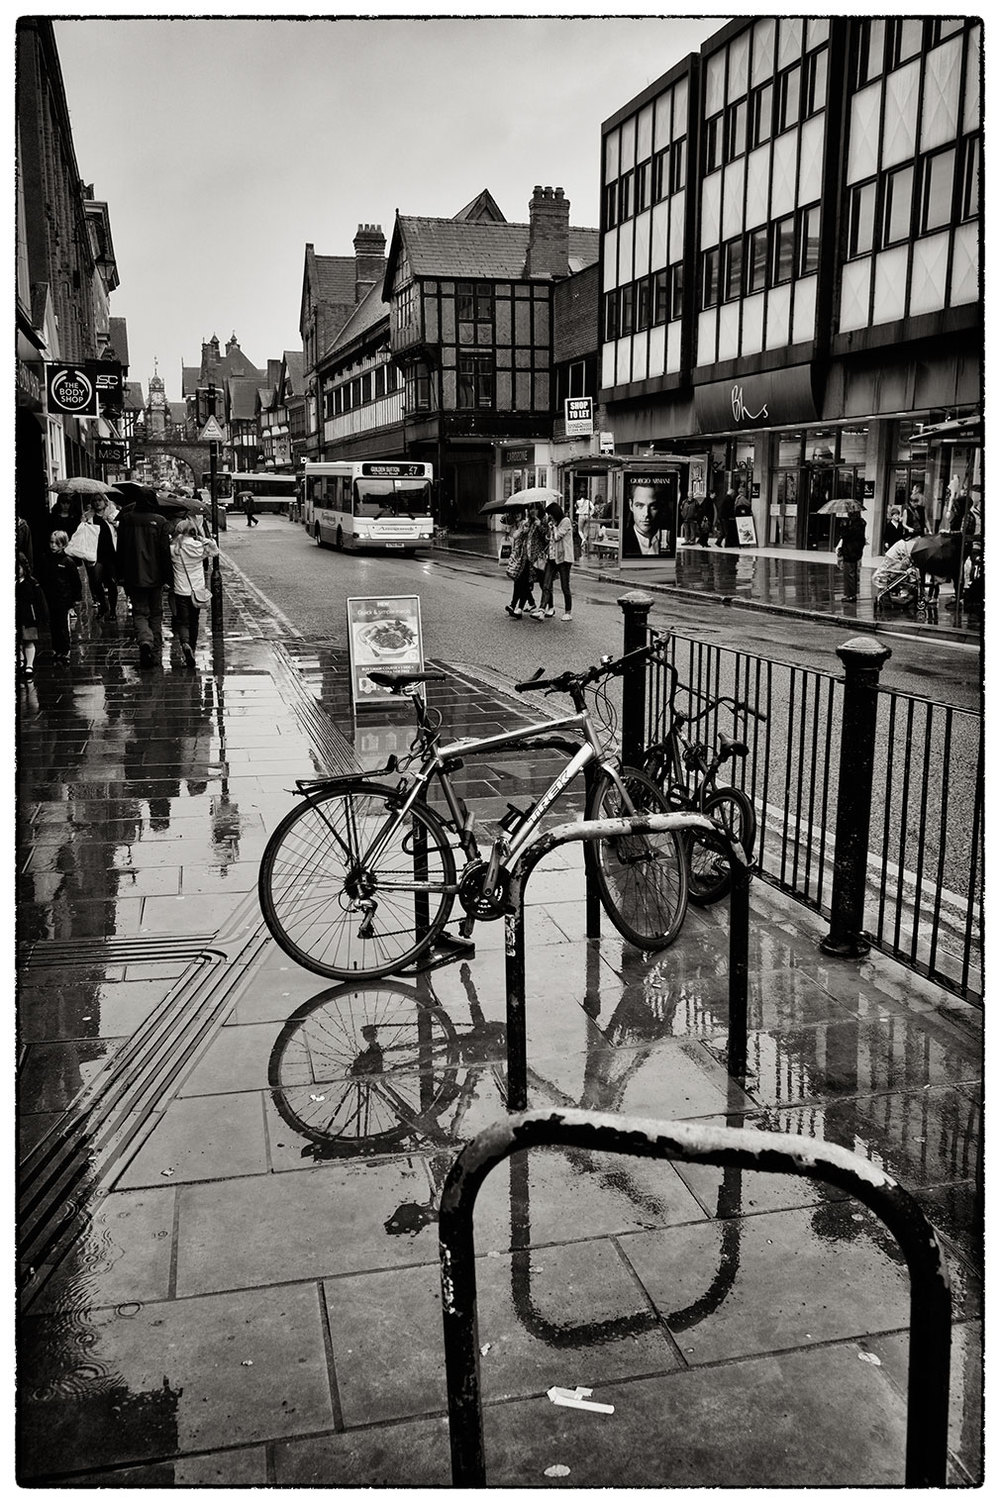 Back from holiday and back to reality! A wet day in Chester.